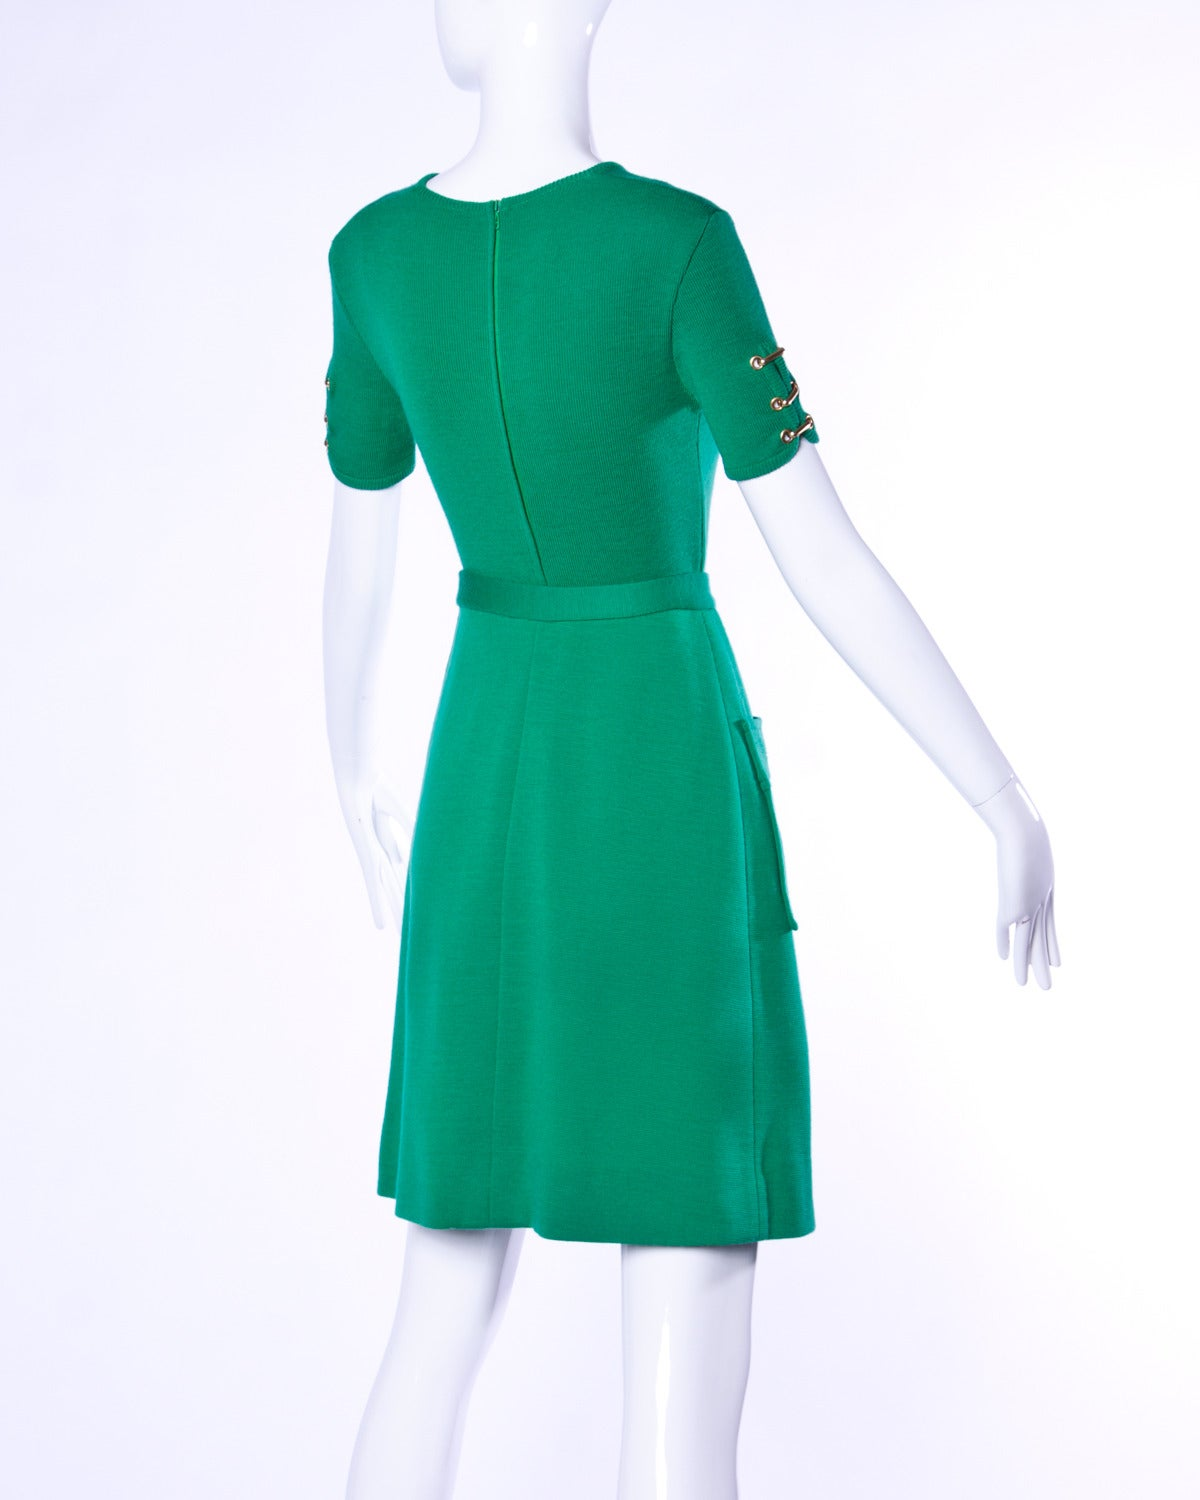 Vintage 1960s 60s Italian Wool Kelly Green Knit Skirt + Top 2-Piece Ensemble 5